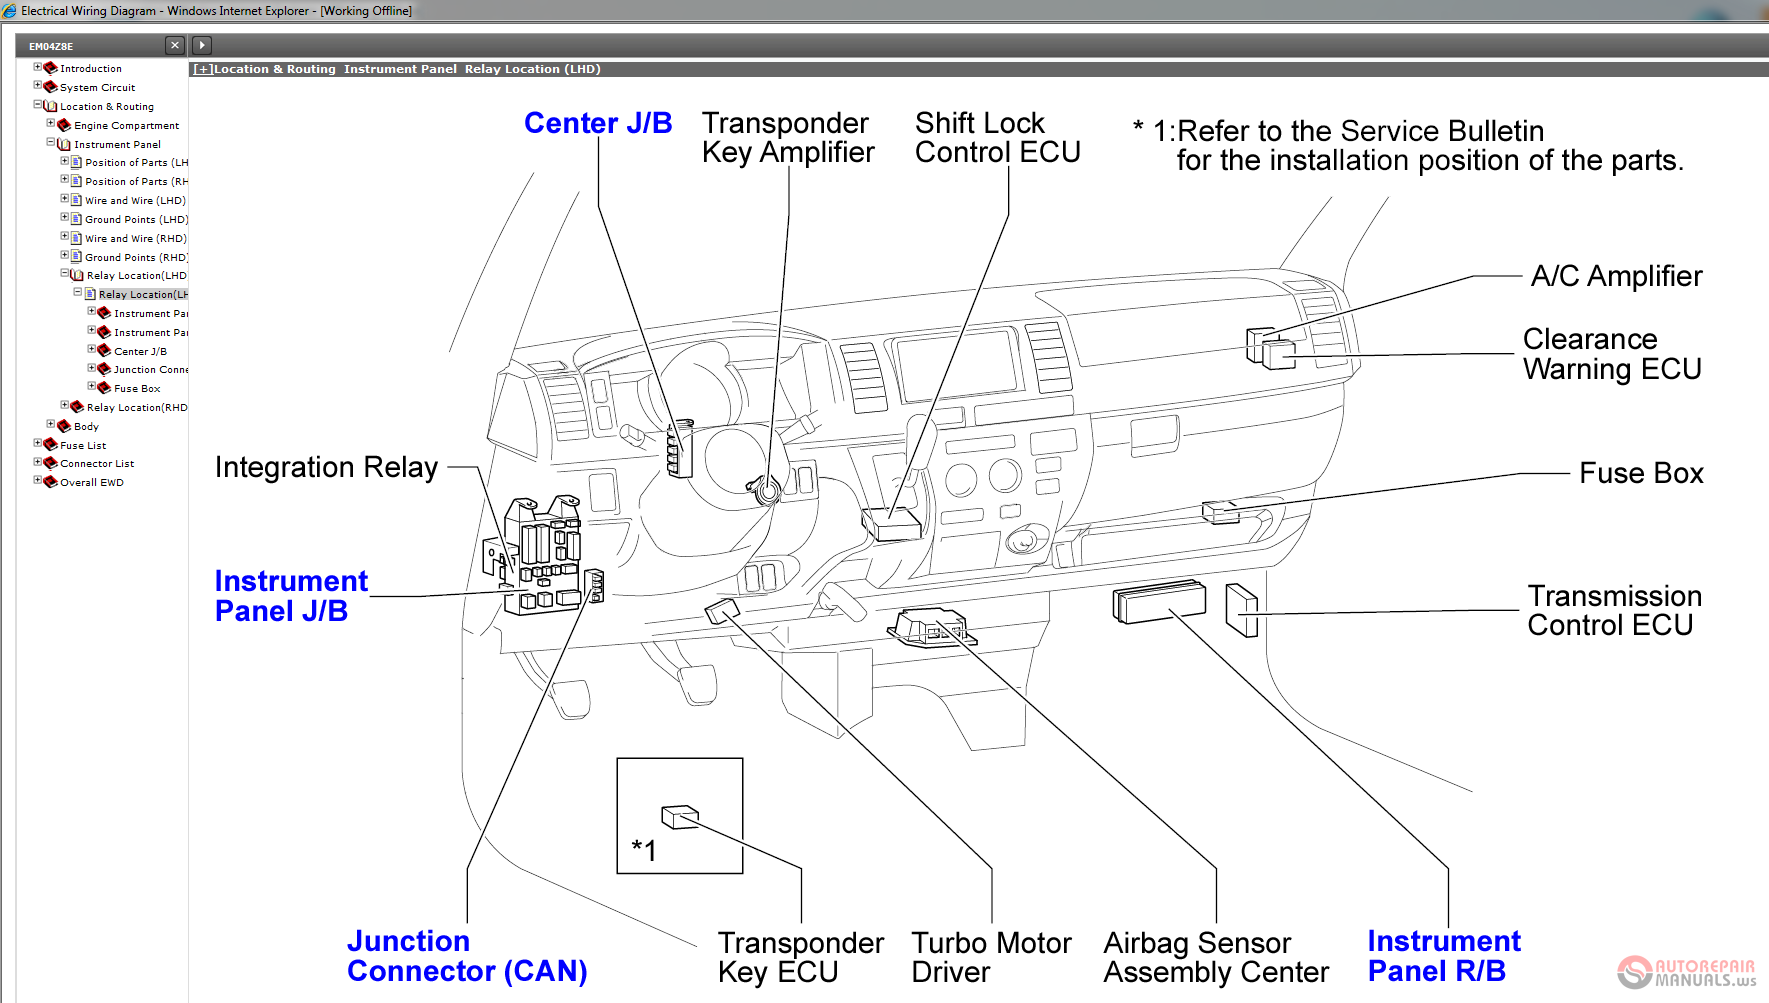 2006 toyota tacoma wiring harness diagram toyota hiace wiring harness diagram toyota hiace wiring harness diagram | wiring library